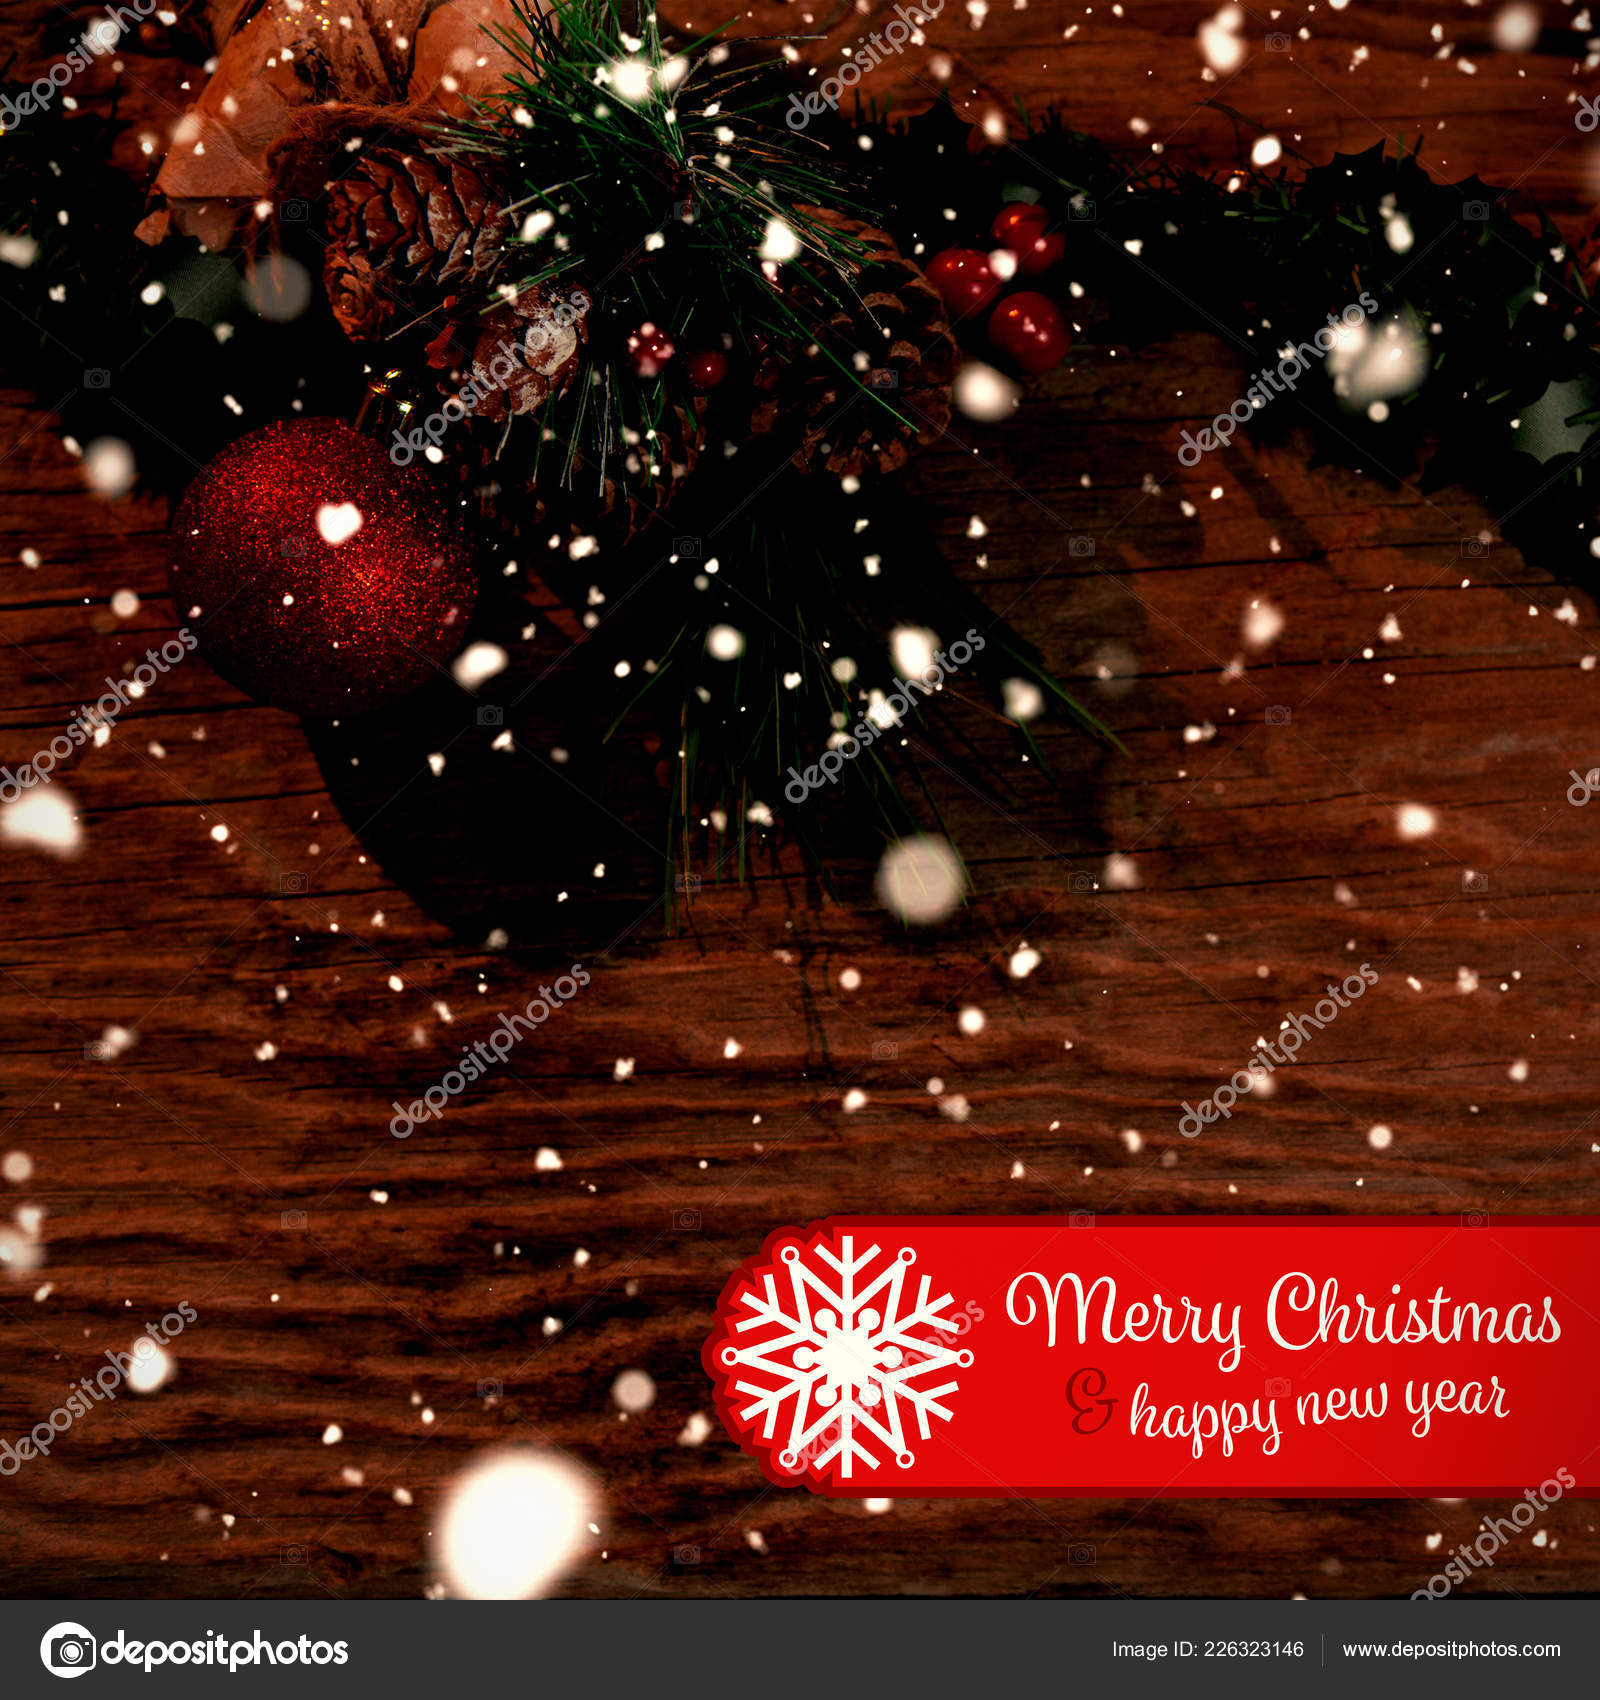 Banner Merry Christmas Copy Space Rustic Christmas Garland Stock Photo C Vectorfusionart 226323146